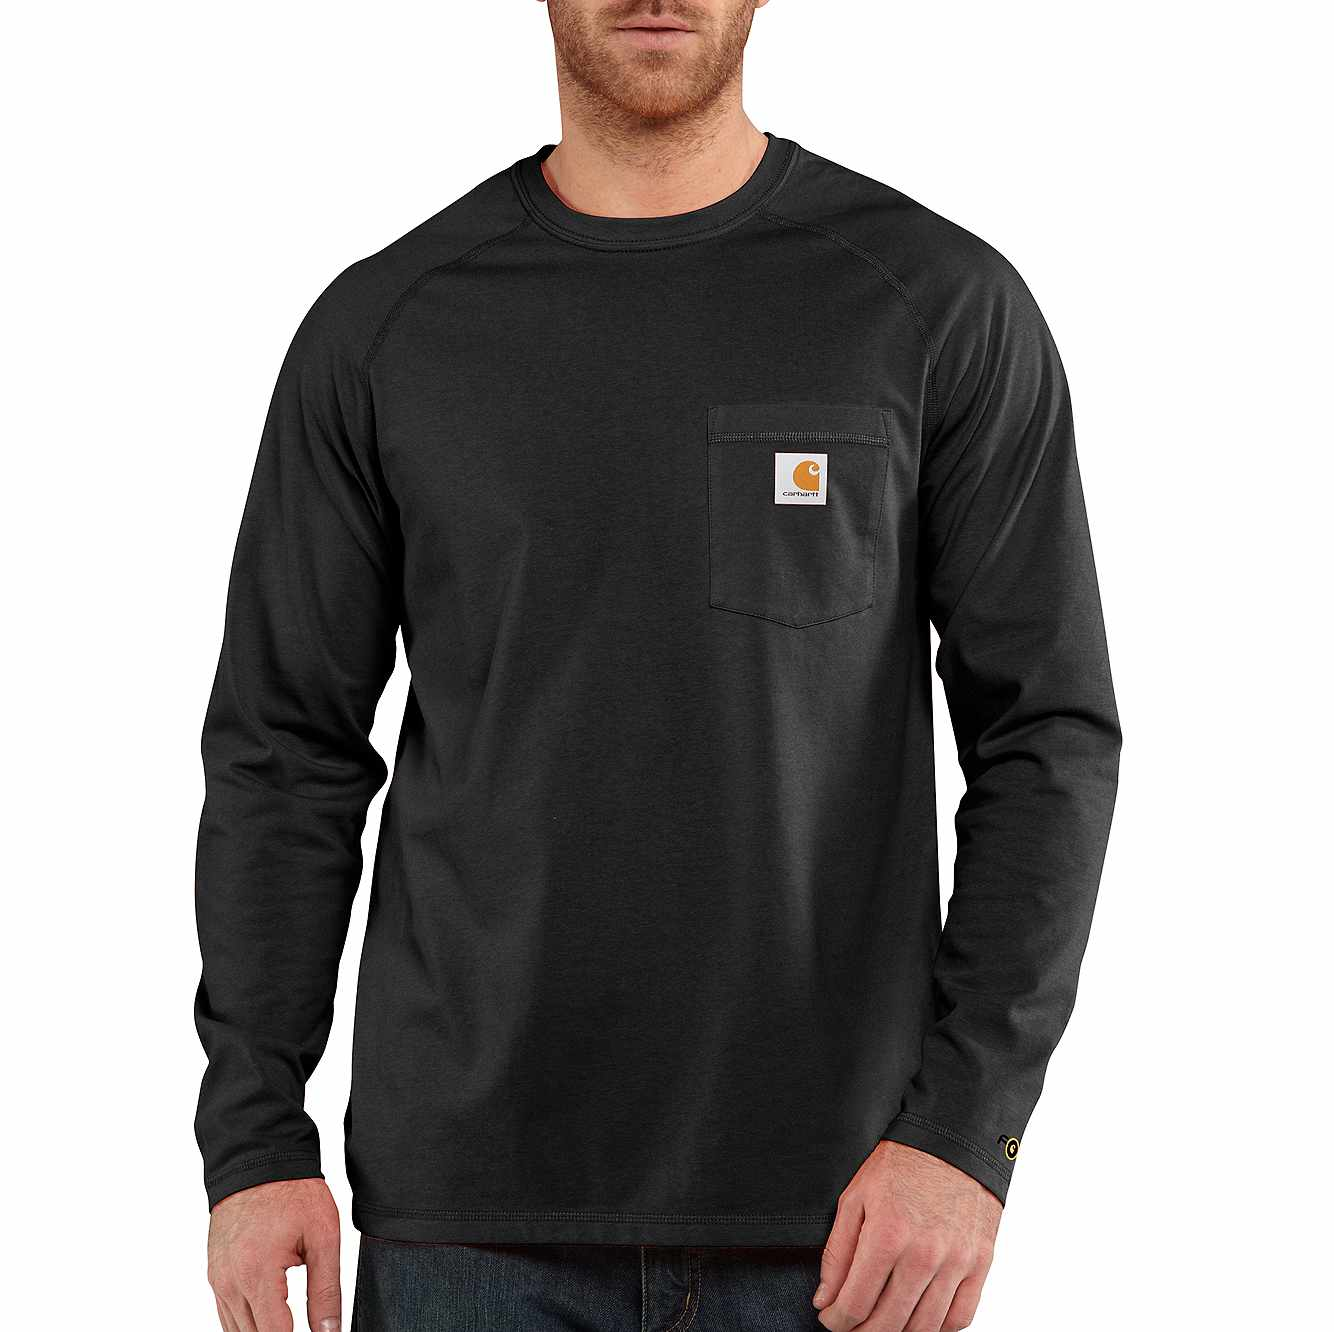 Picture of Carhartt Force® Cotton Delmont Long-Sleeve T-Shirt in Black